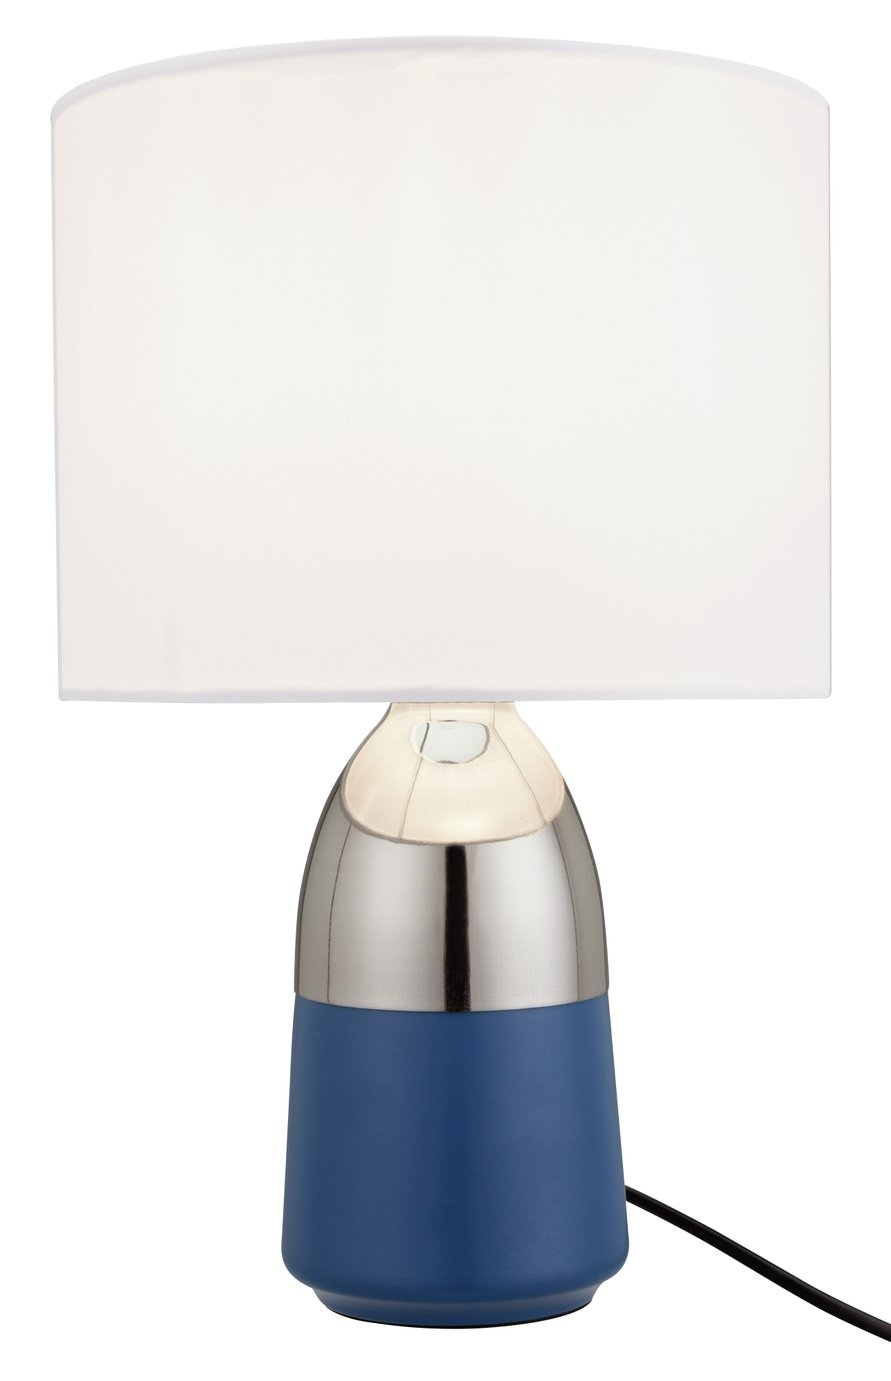 Argos Home Duno Touch Table Lamp - Blue & Chrome